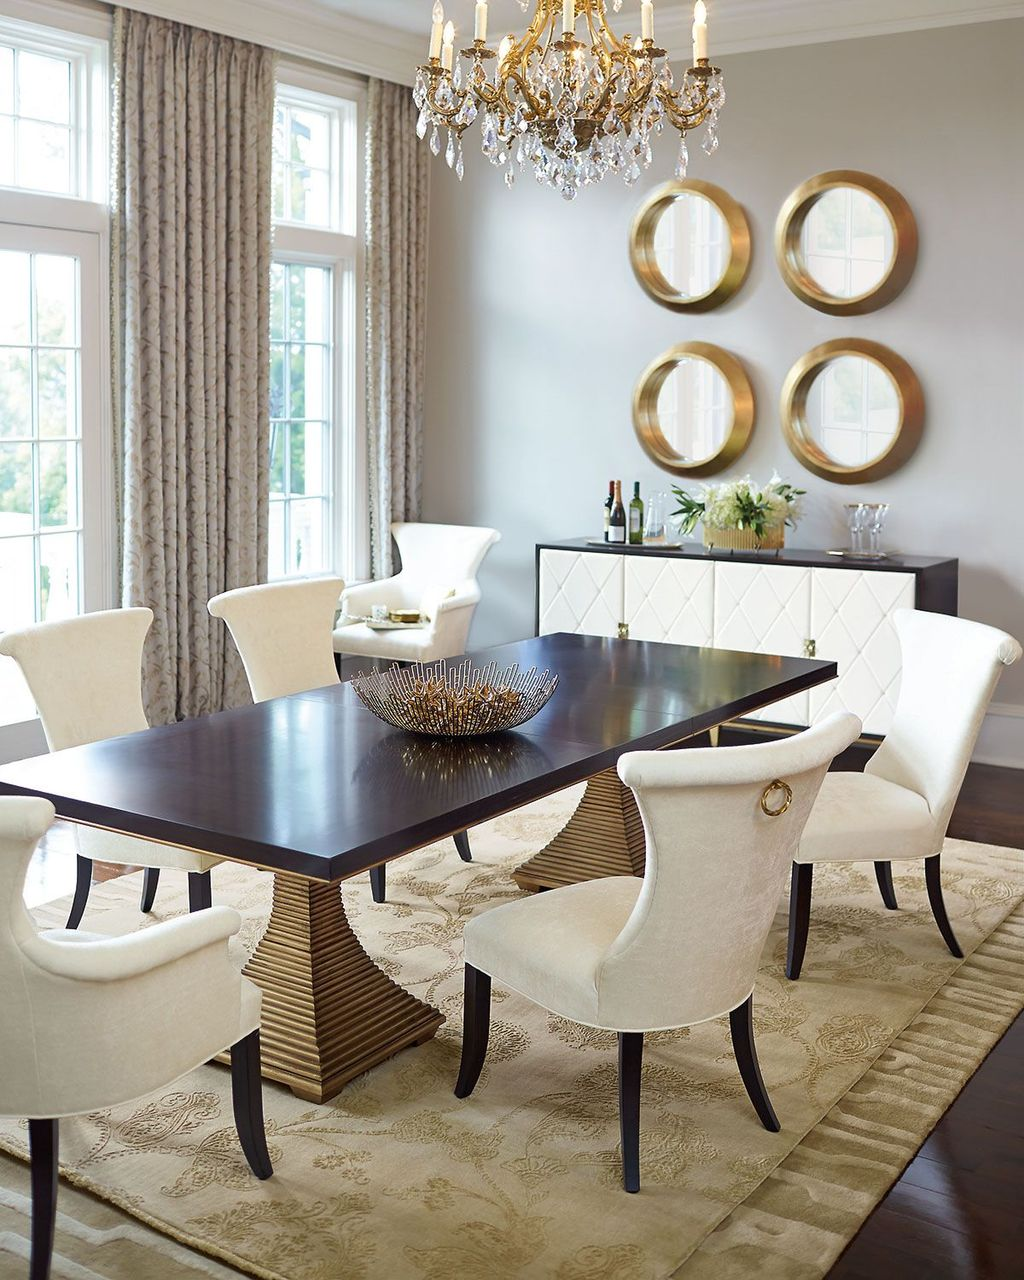 Amazing Wall Mirror Design Ideas For Dining Room Decor 02